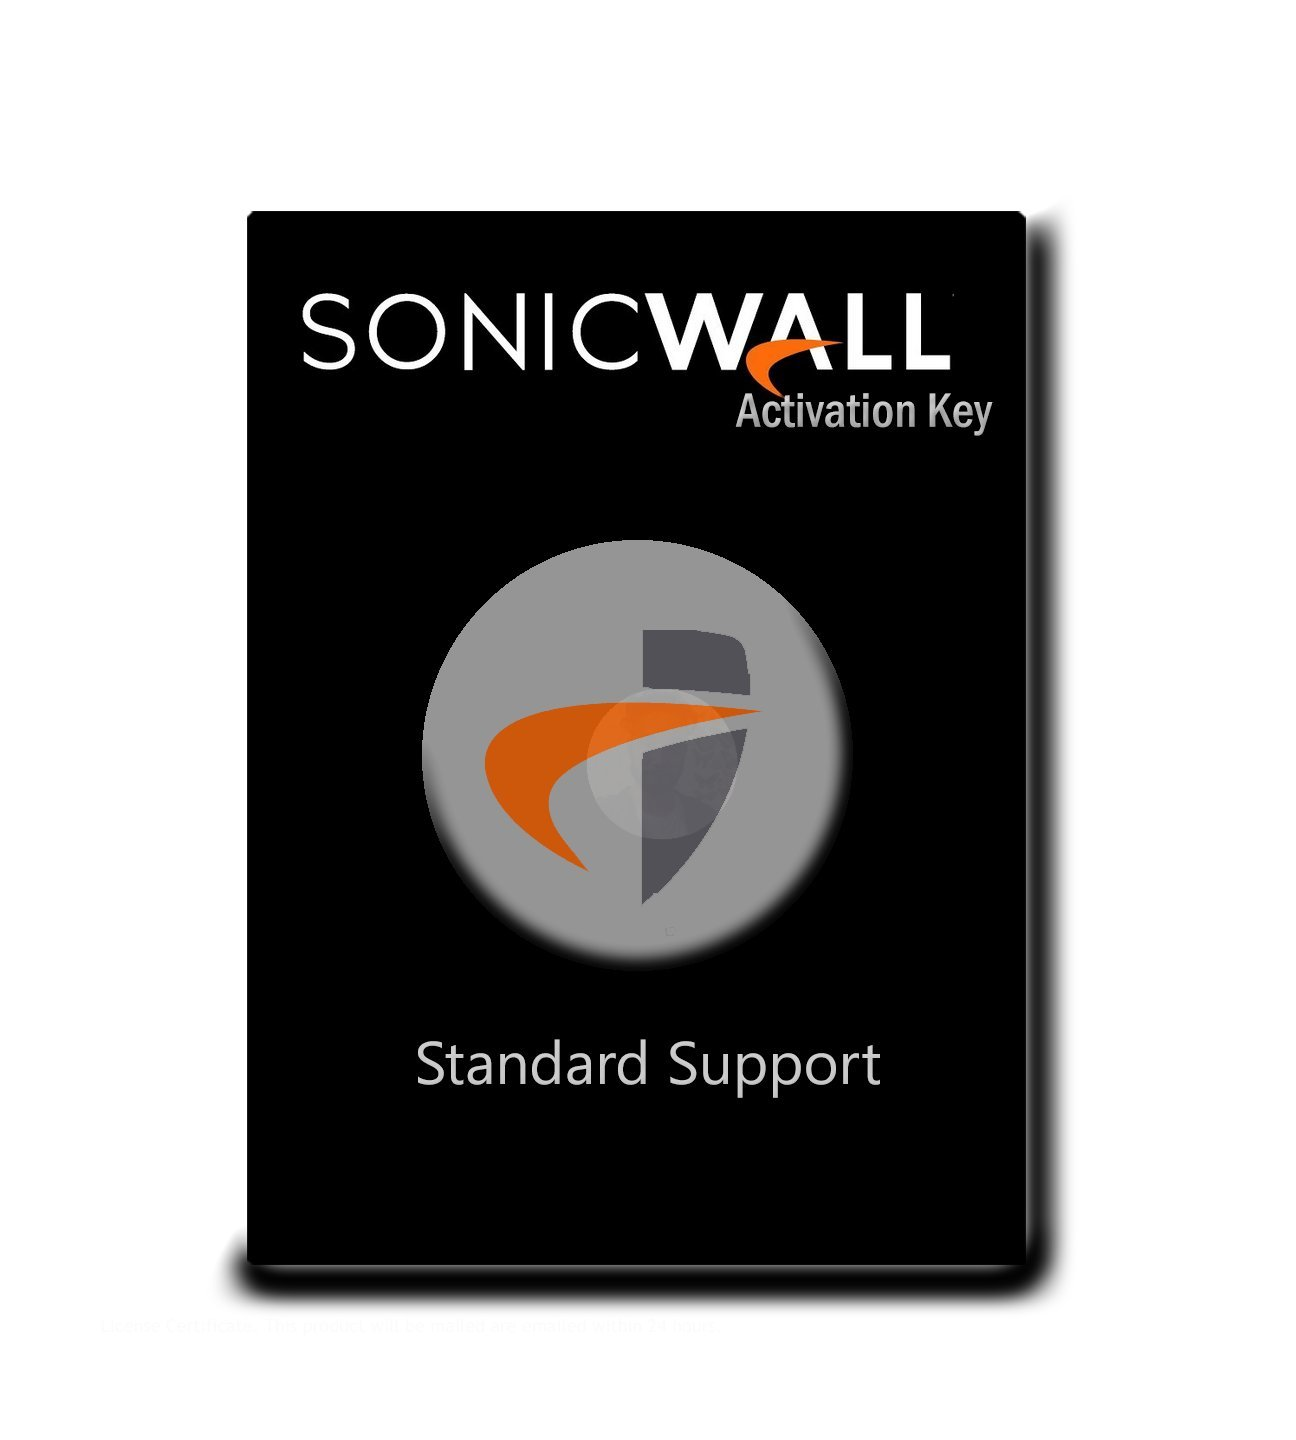 SonicWall | 01-SSC-0614 | STANDARD SUPPORT FOR TZ300 SERIES 1 Year